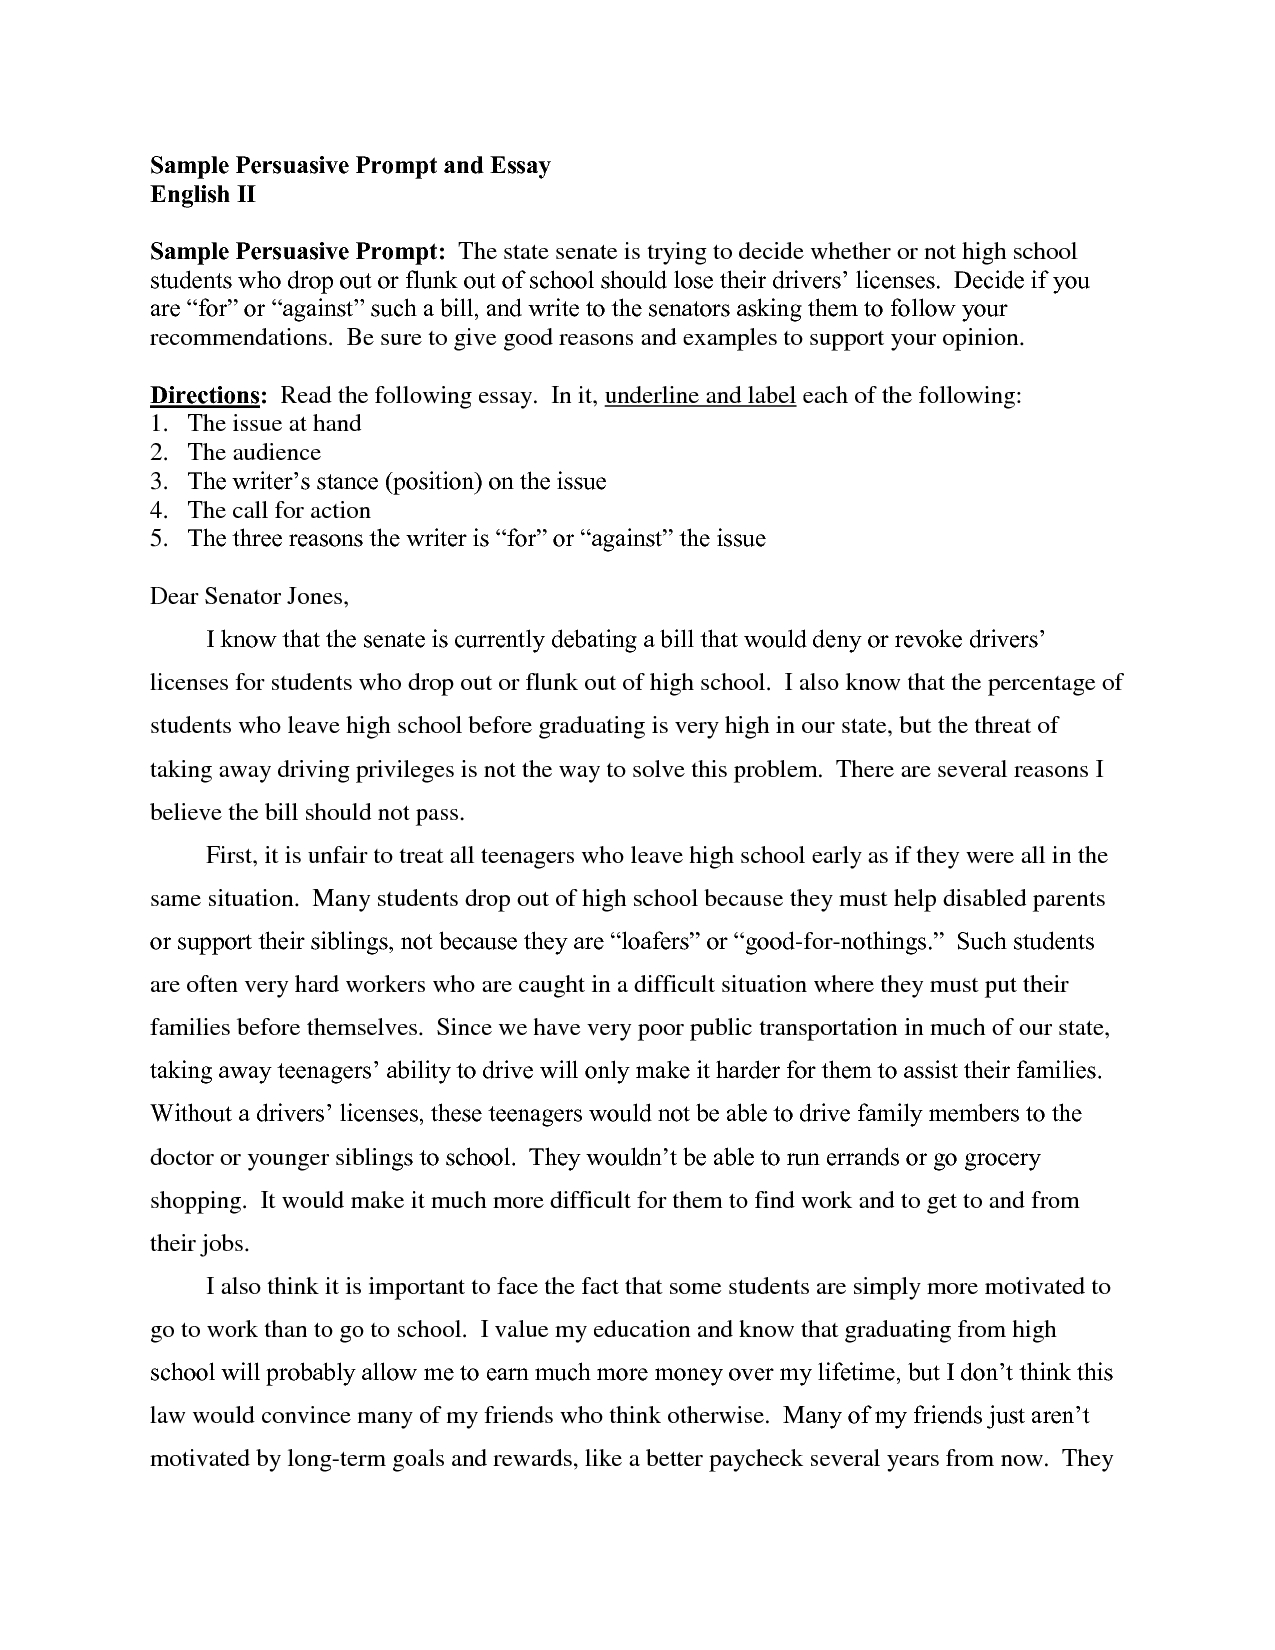 Example Of A Good Thesis Statement For An Essay  Proposal Essay Ideas also Essay Paper Generator Topics For Synthesis Essay Essay Examples Synthesis Outline  Thesis Statement For Friendship Essay